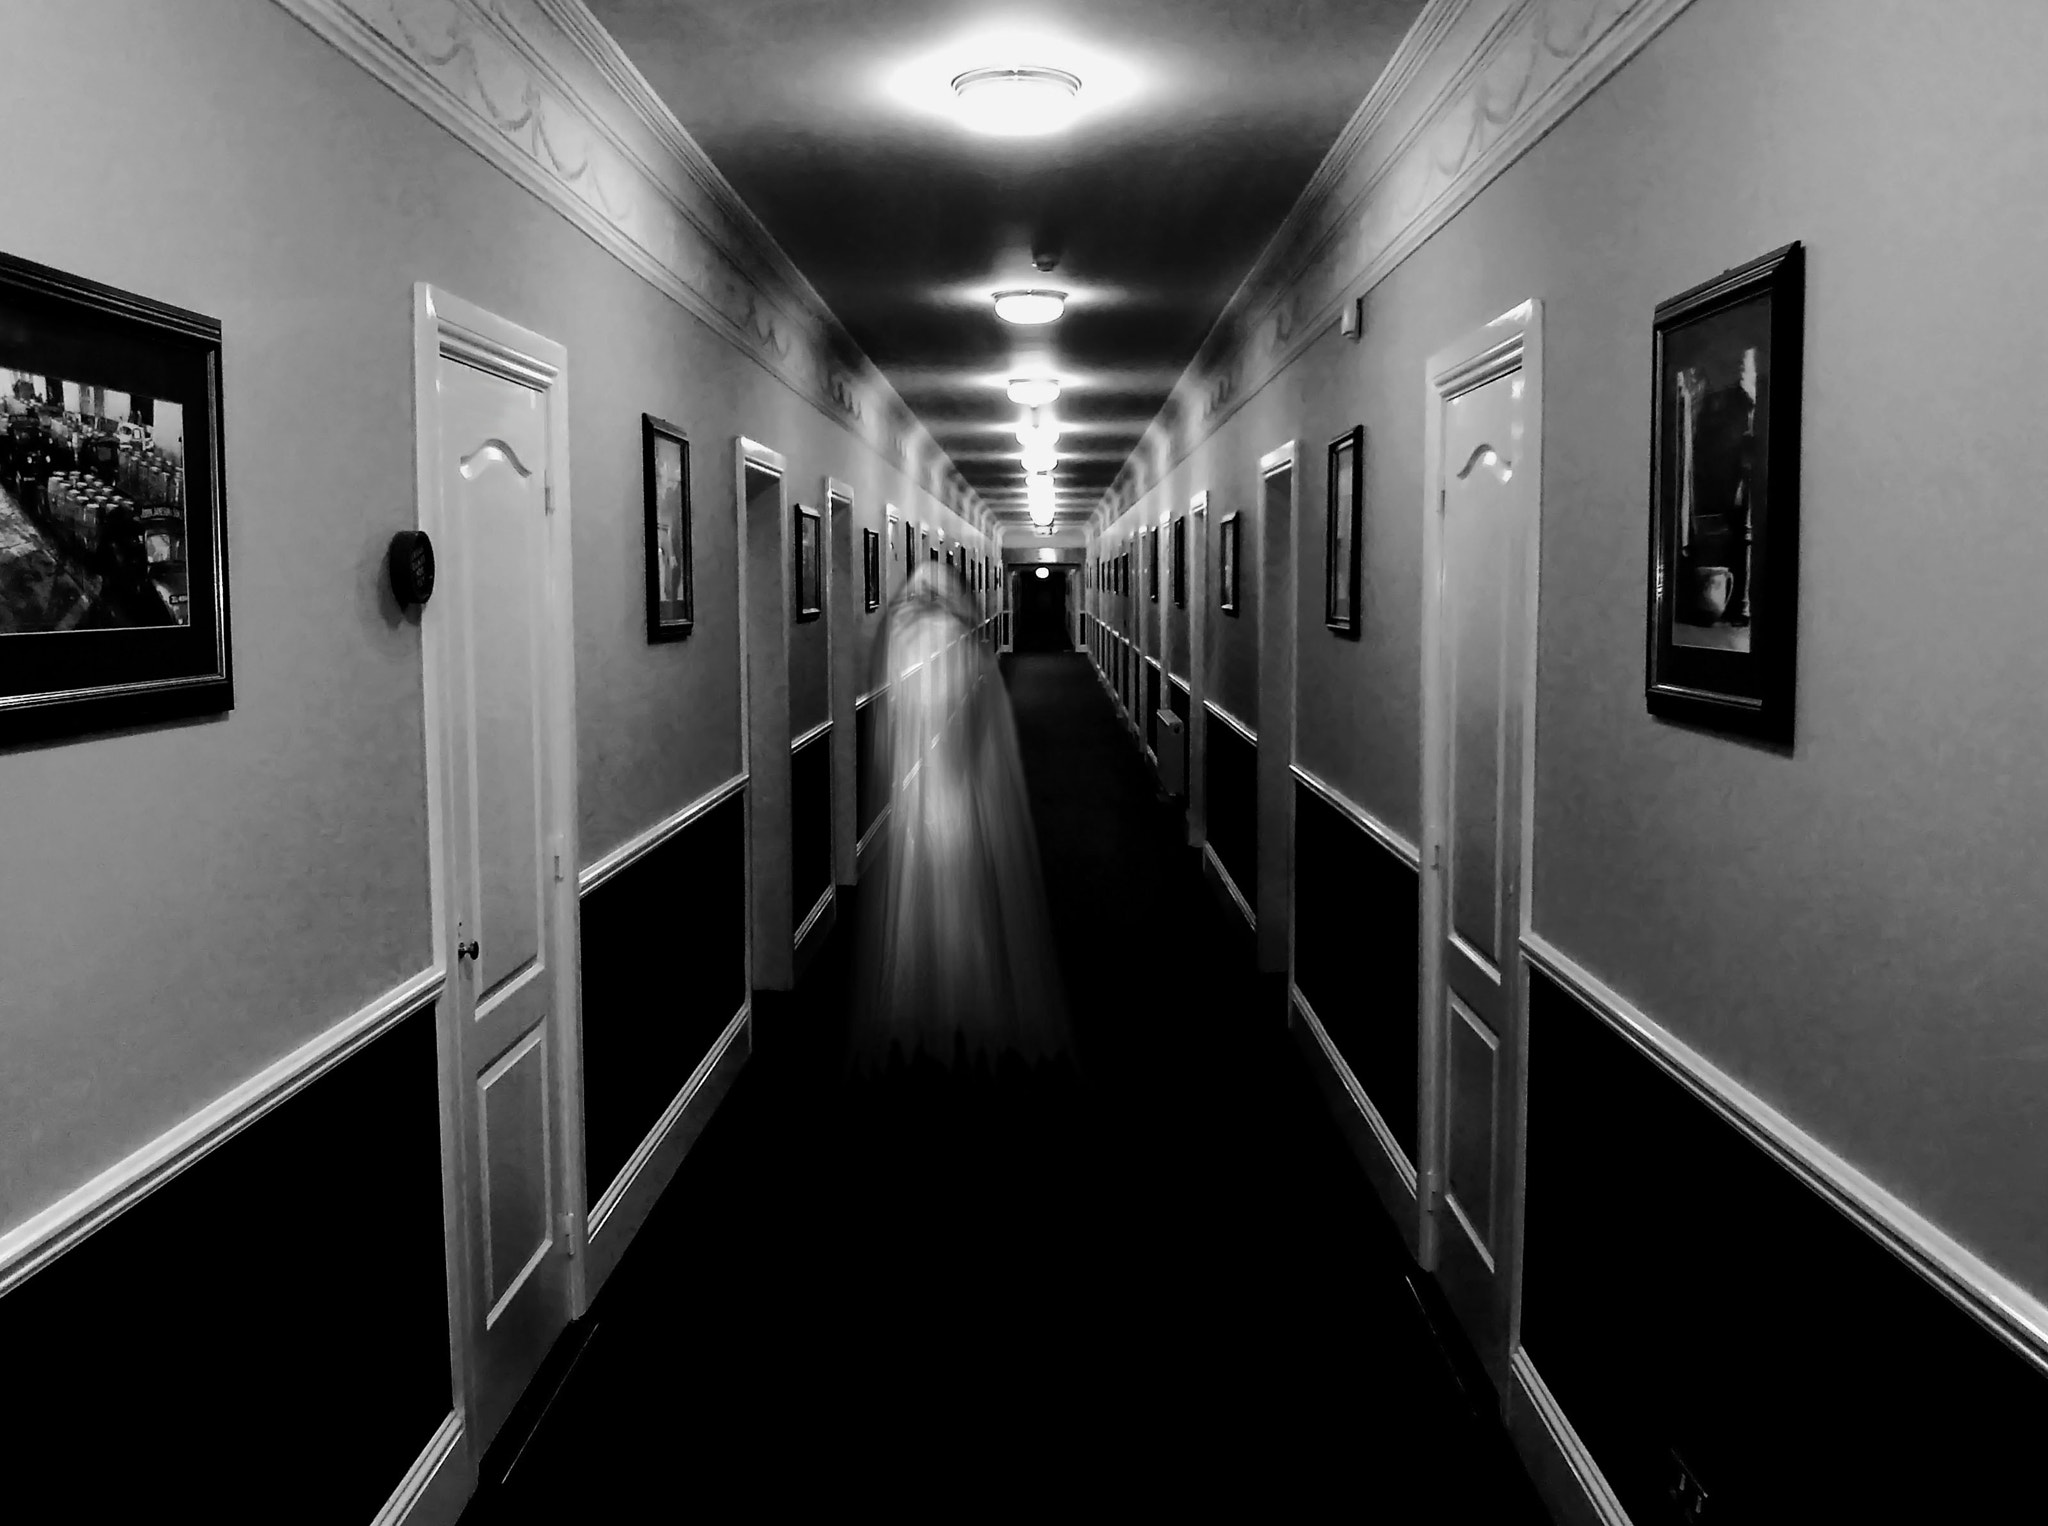 Photograph Corridor ghost by André Quartin Santos on 500px